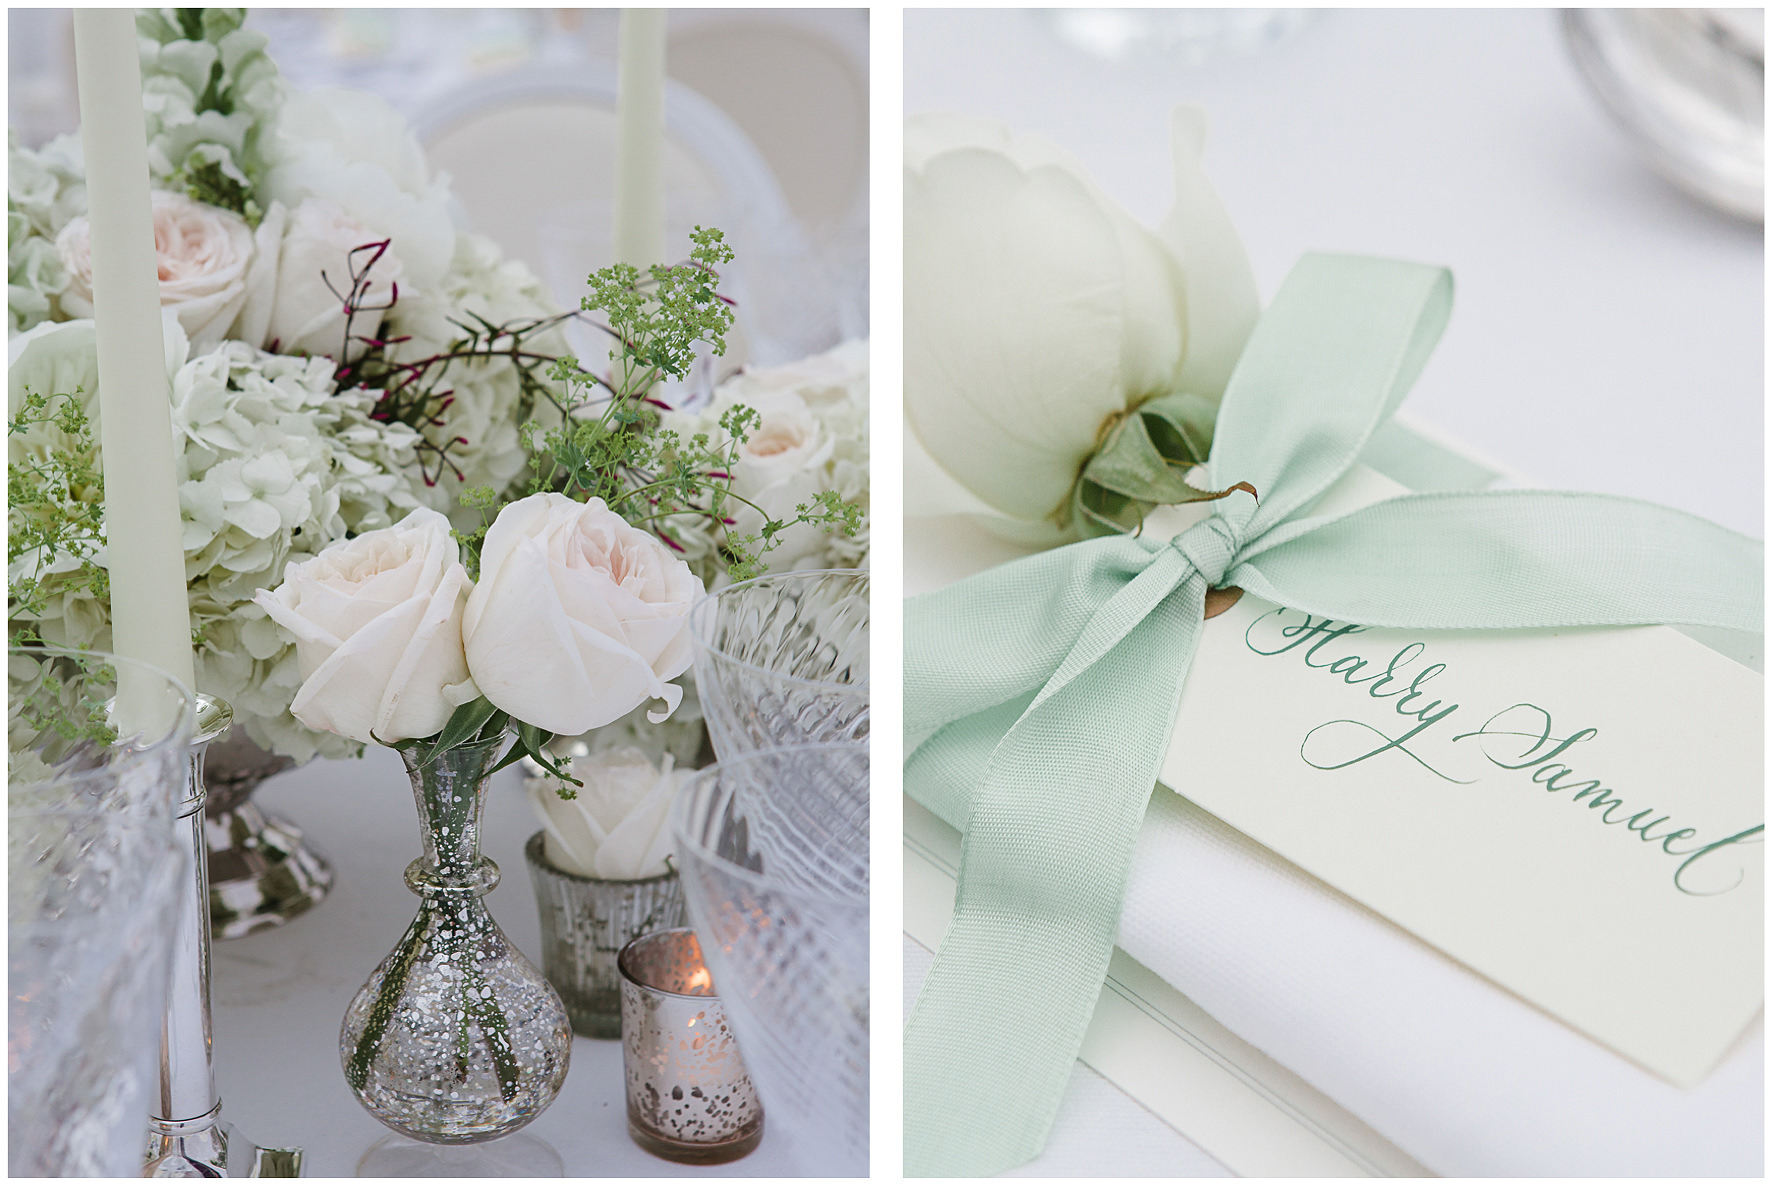 luxury wedding, berkshire, home wedding, tablescape, cream, green, roses, floral details, crockery, candles, Lucy Davenport Photography